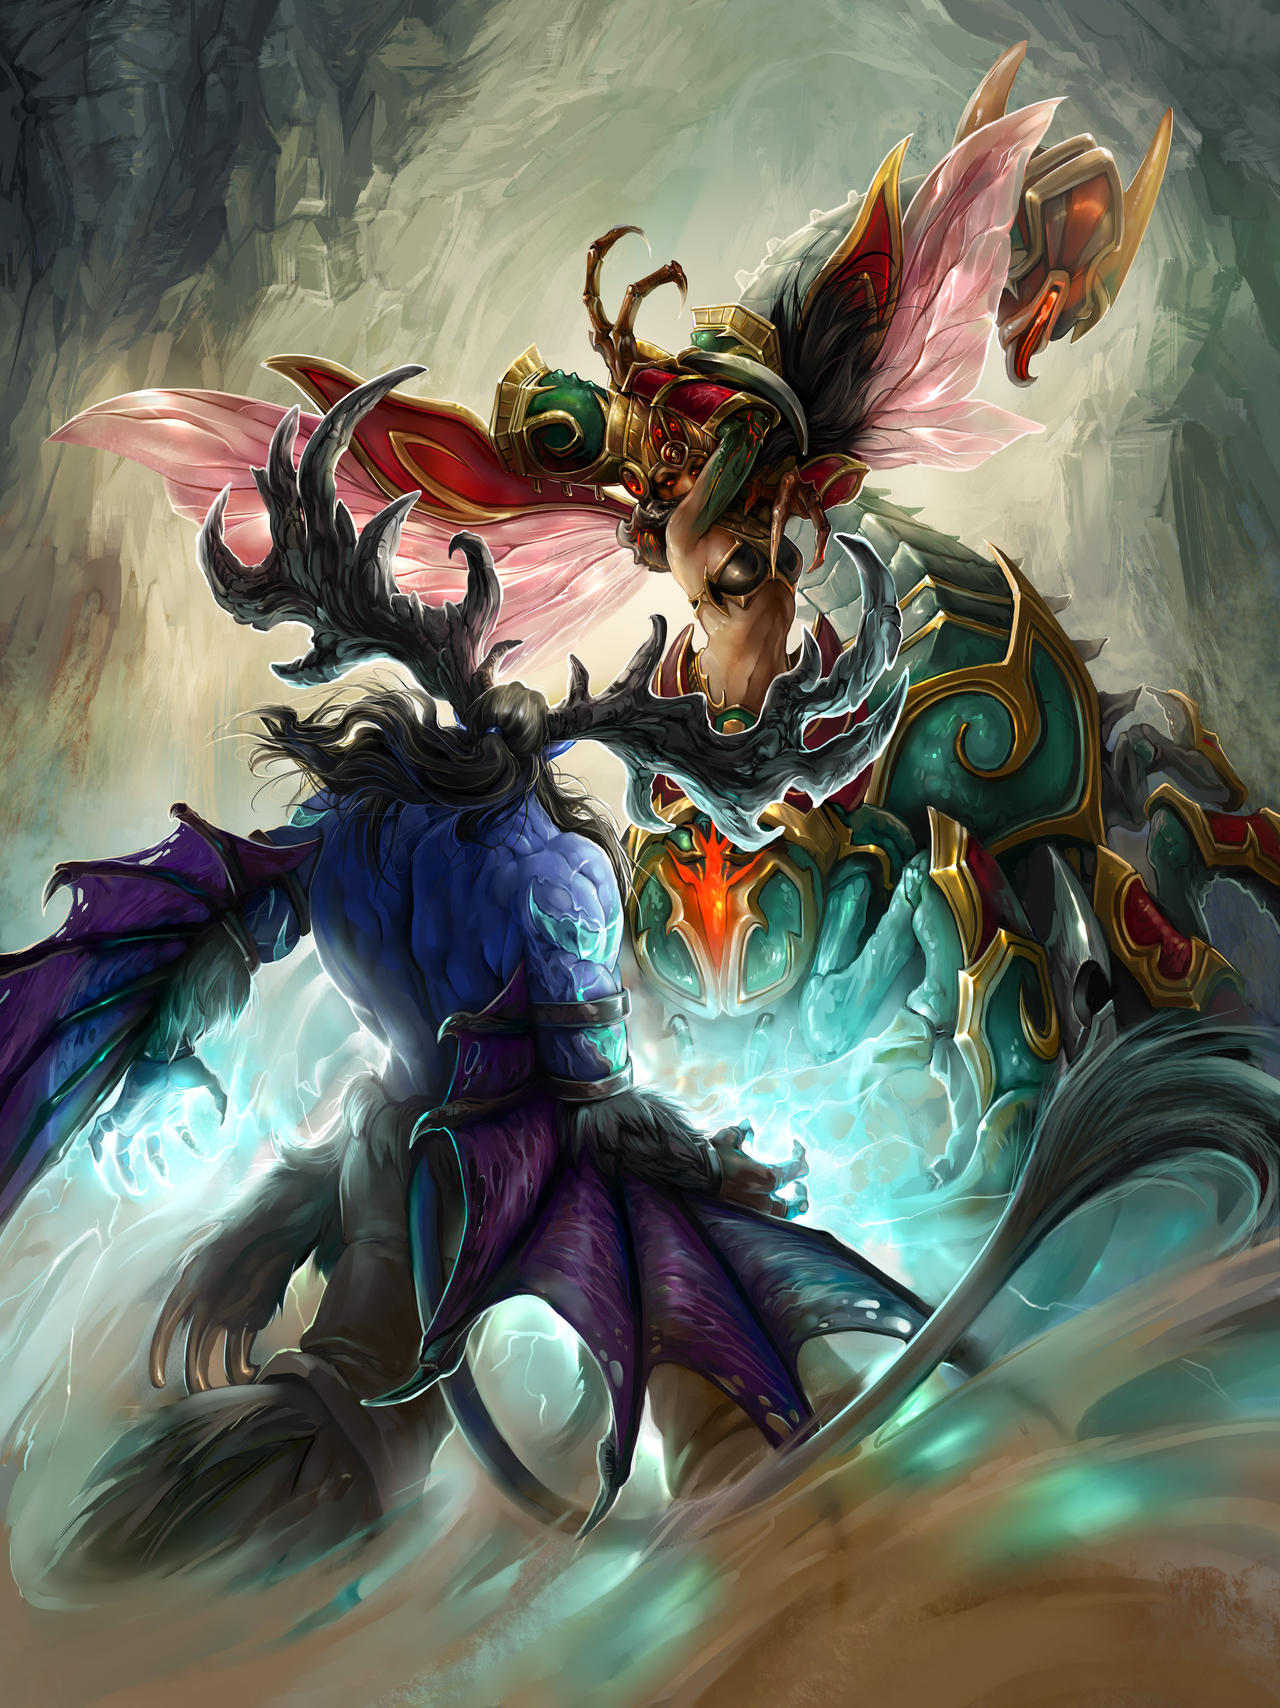 Zagara Vs Malfurion By Misha Dragonov On Deviantart Particularly specialists i remember one game on cursed hollow where we had murky + abathur and the other team had zagara + xul. zagara vs malfurion by misha dragonov